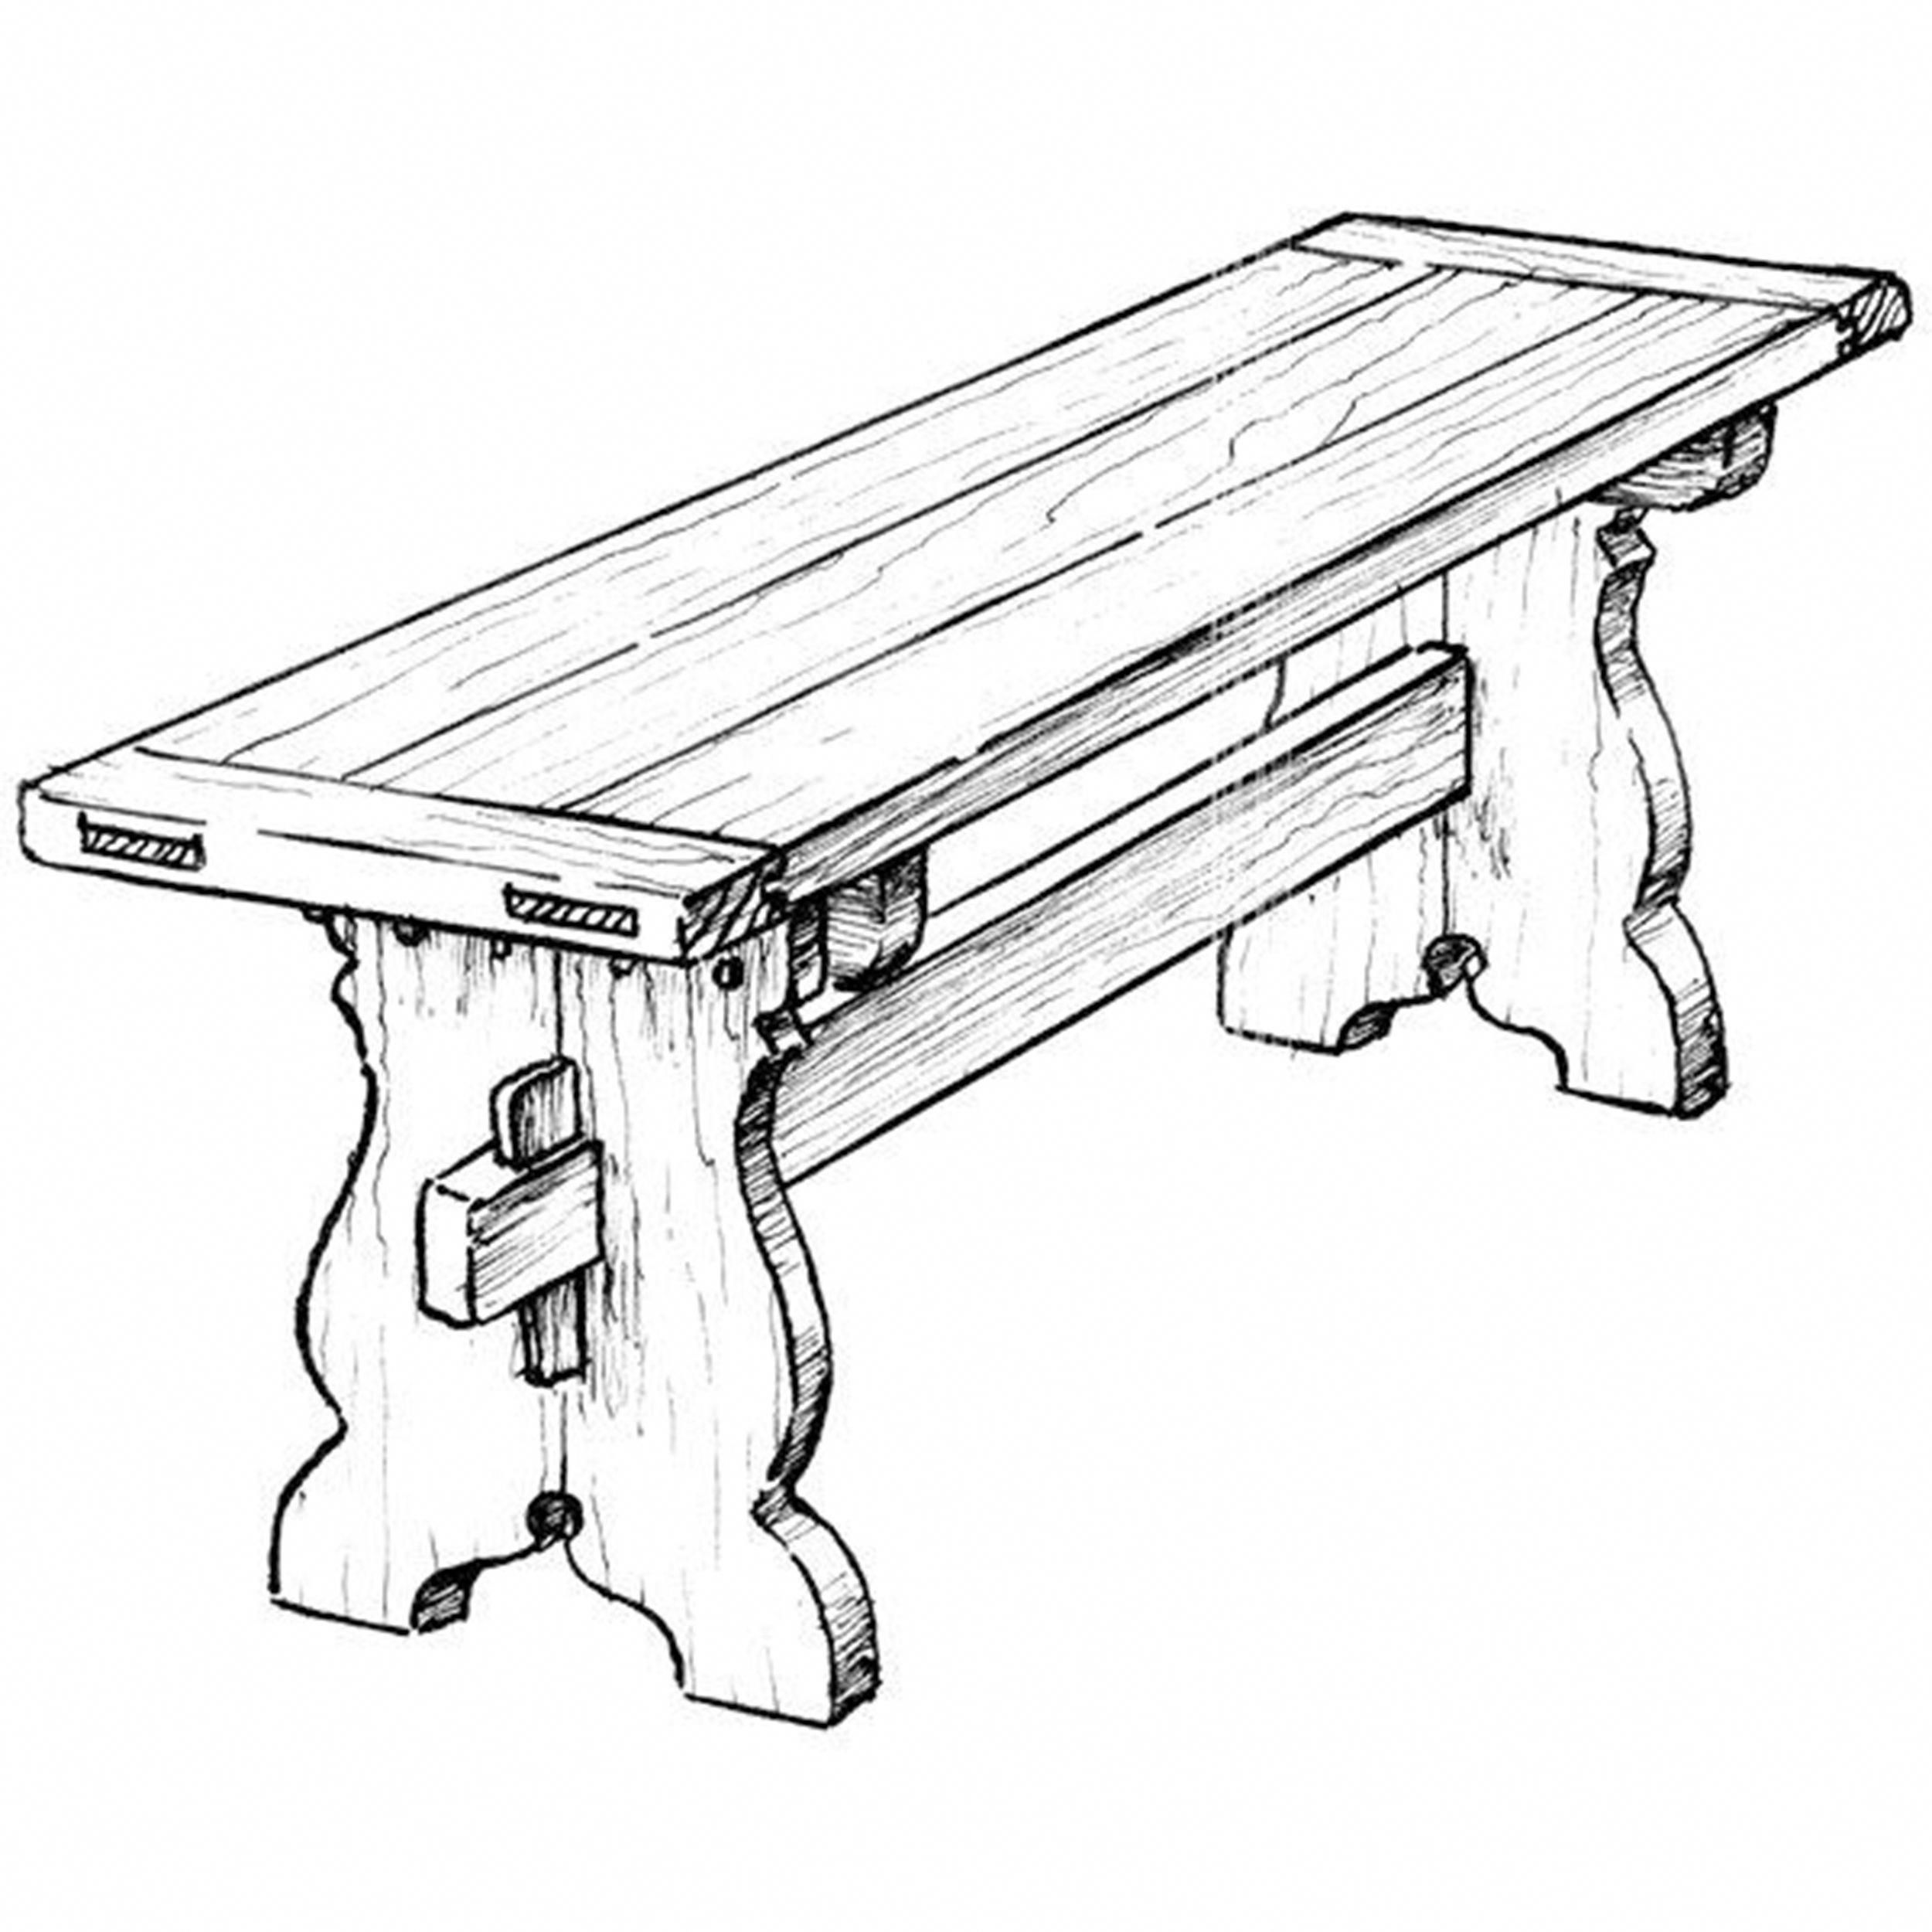 Woodworking Project Paper Plan to Build Trestle Bench #